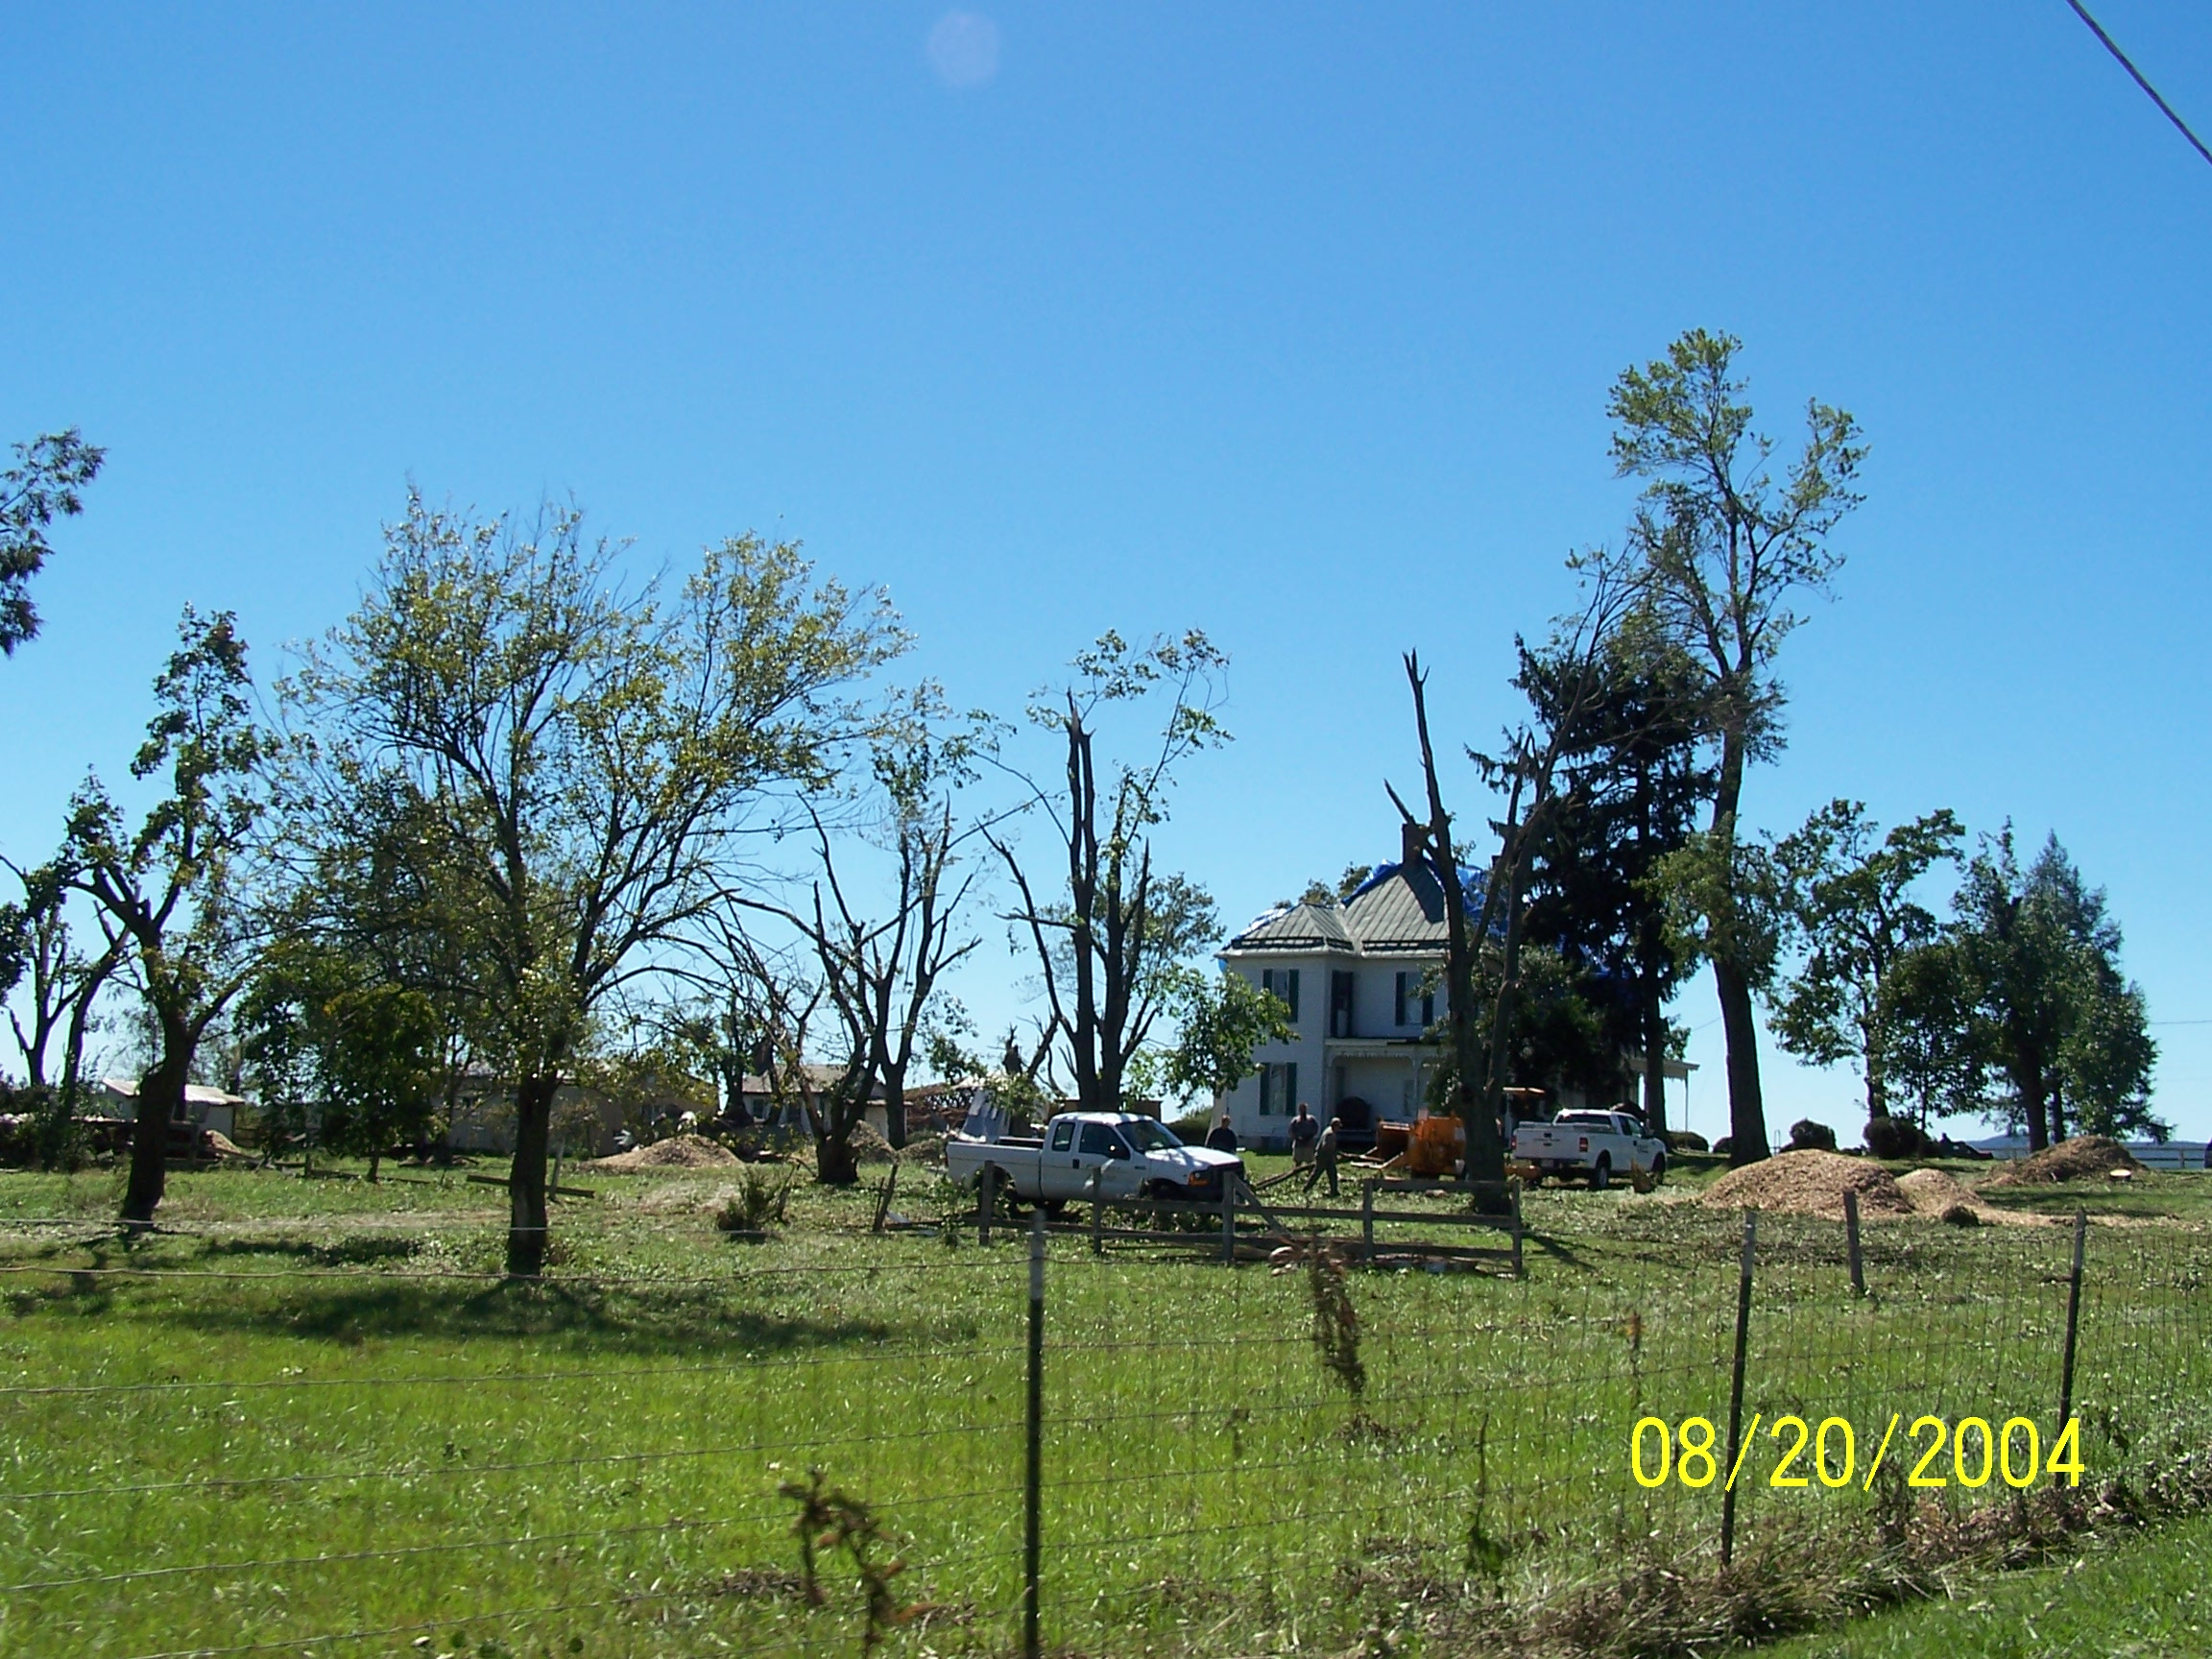 /images/lwx/sept17tornadoes/FrederickMD_Picture3.jpg